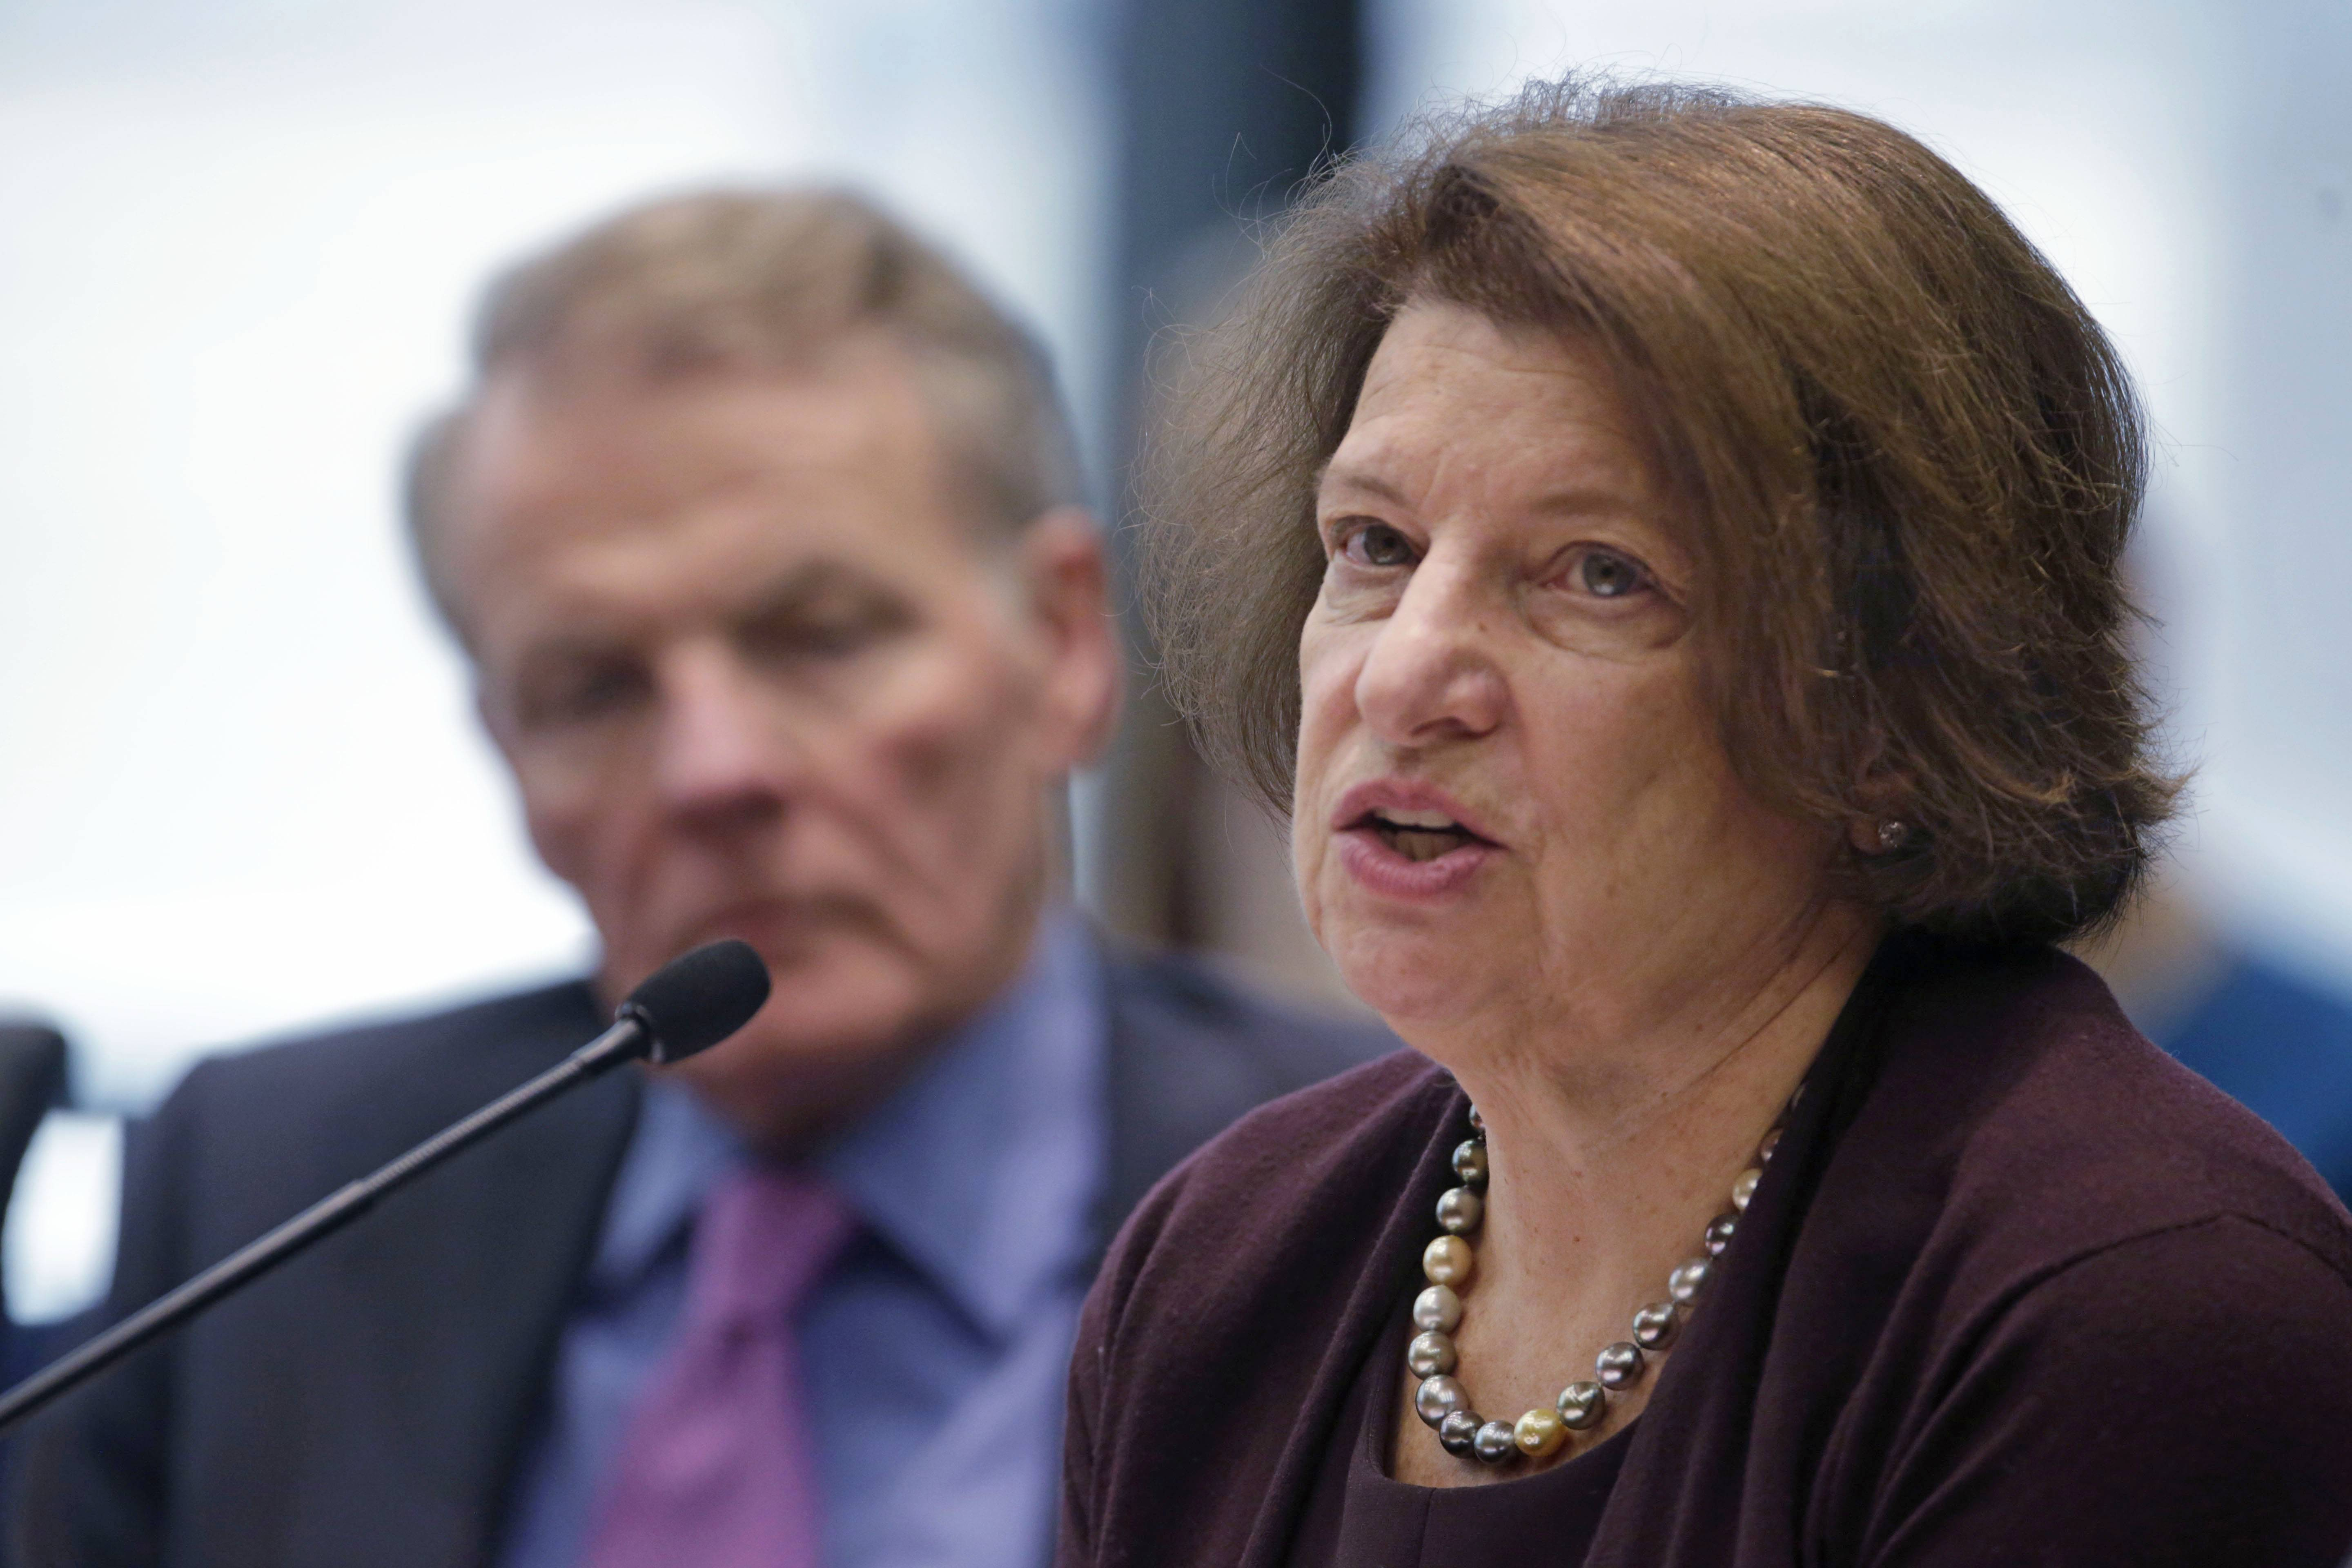 Susan Sher, senior adviser to the president of the University of Chicago, right, and Illinois House Speaker Michael Madigan appear before an Illinois House committee meeting Thursday in Chicago regarding a plan to devote $100 million in state funds to help bring President Barack Obama's presidential museum and library to the city.